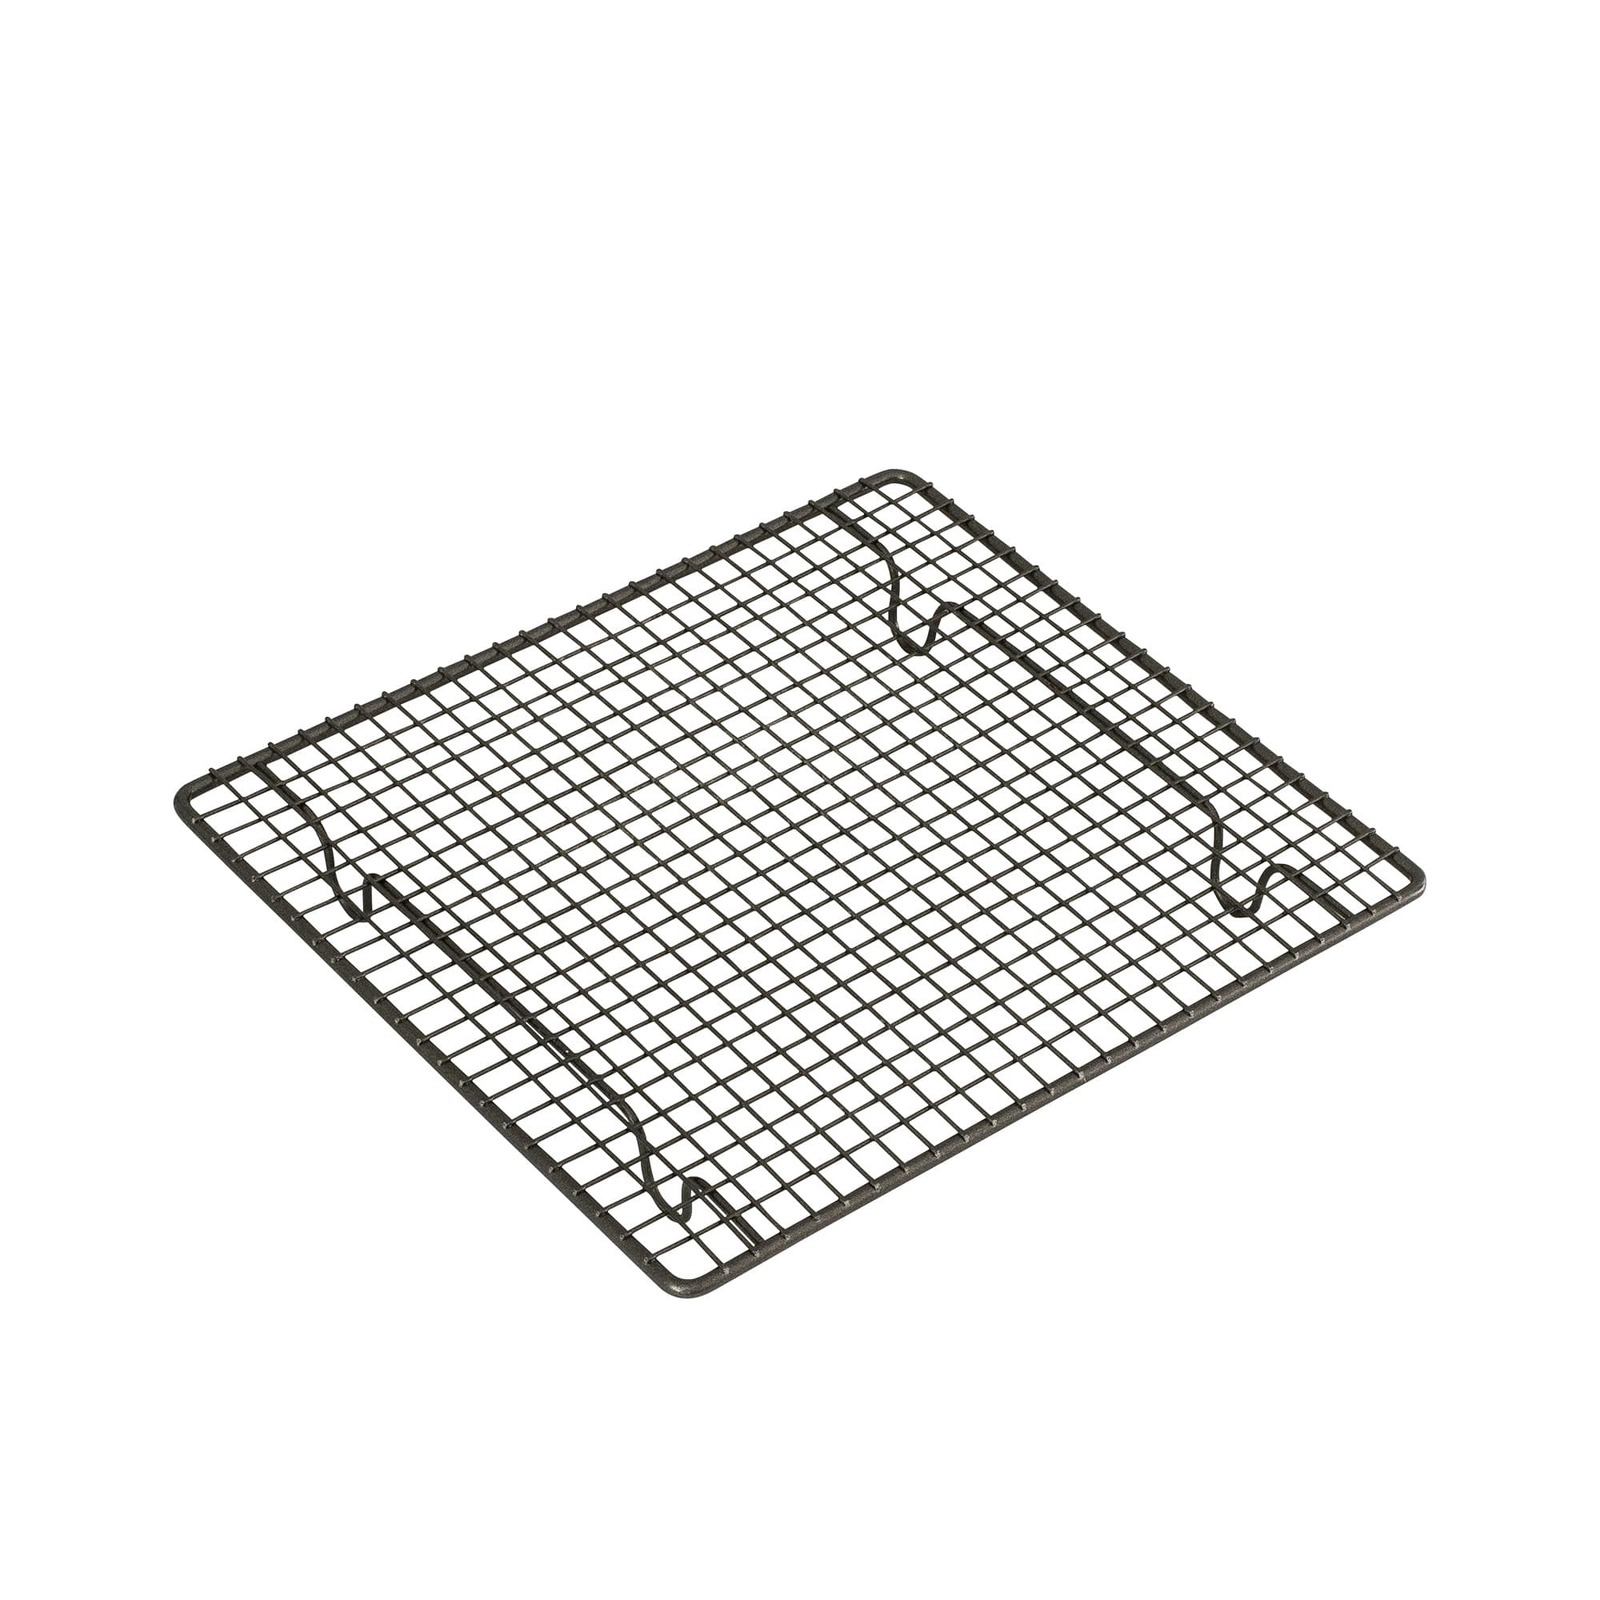 Bakemaster Non Stick Cooling Tray 25x23cm